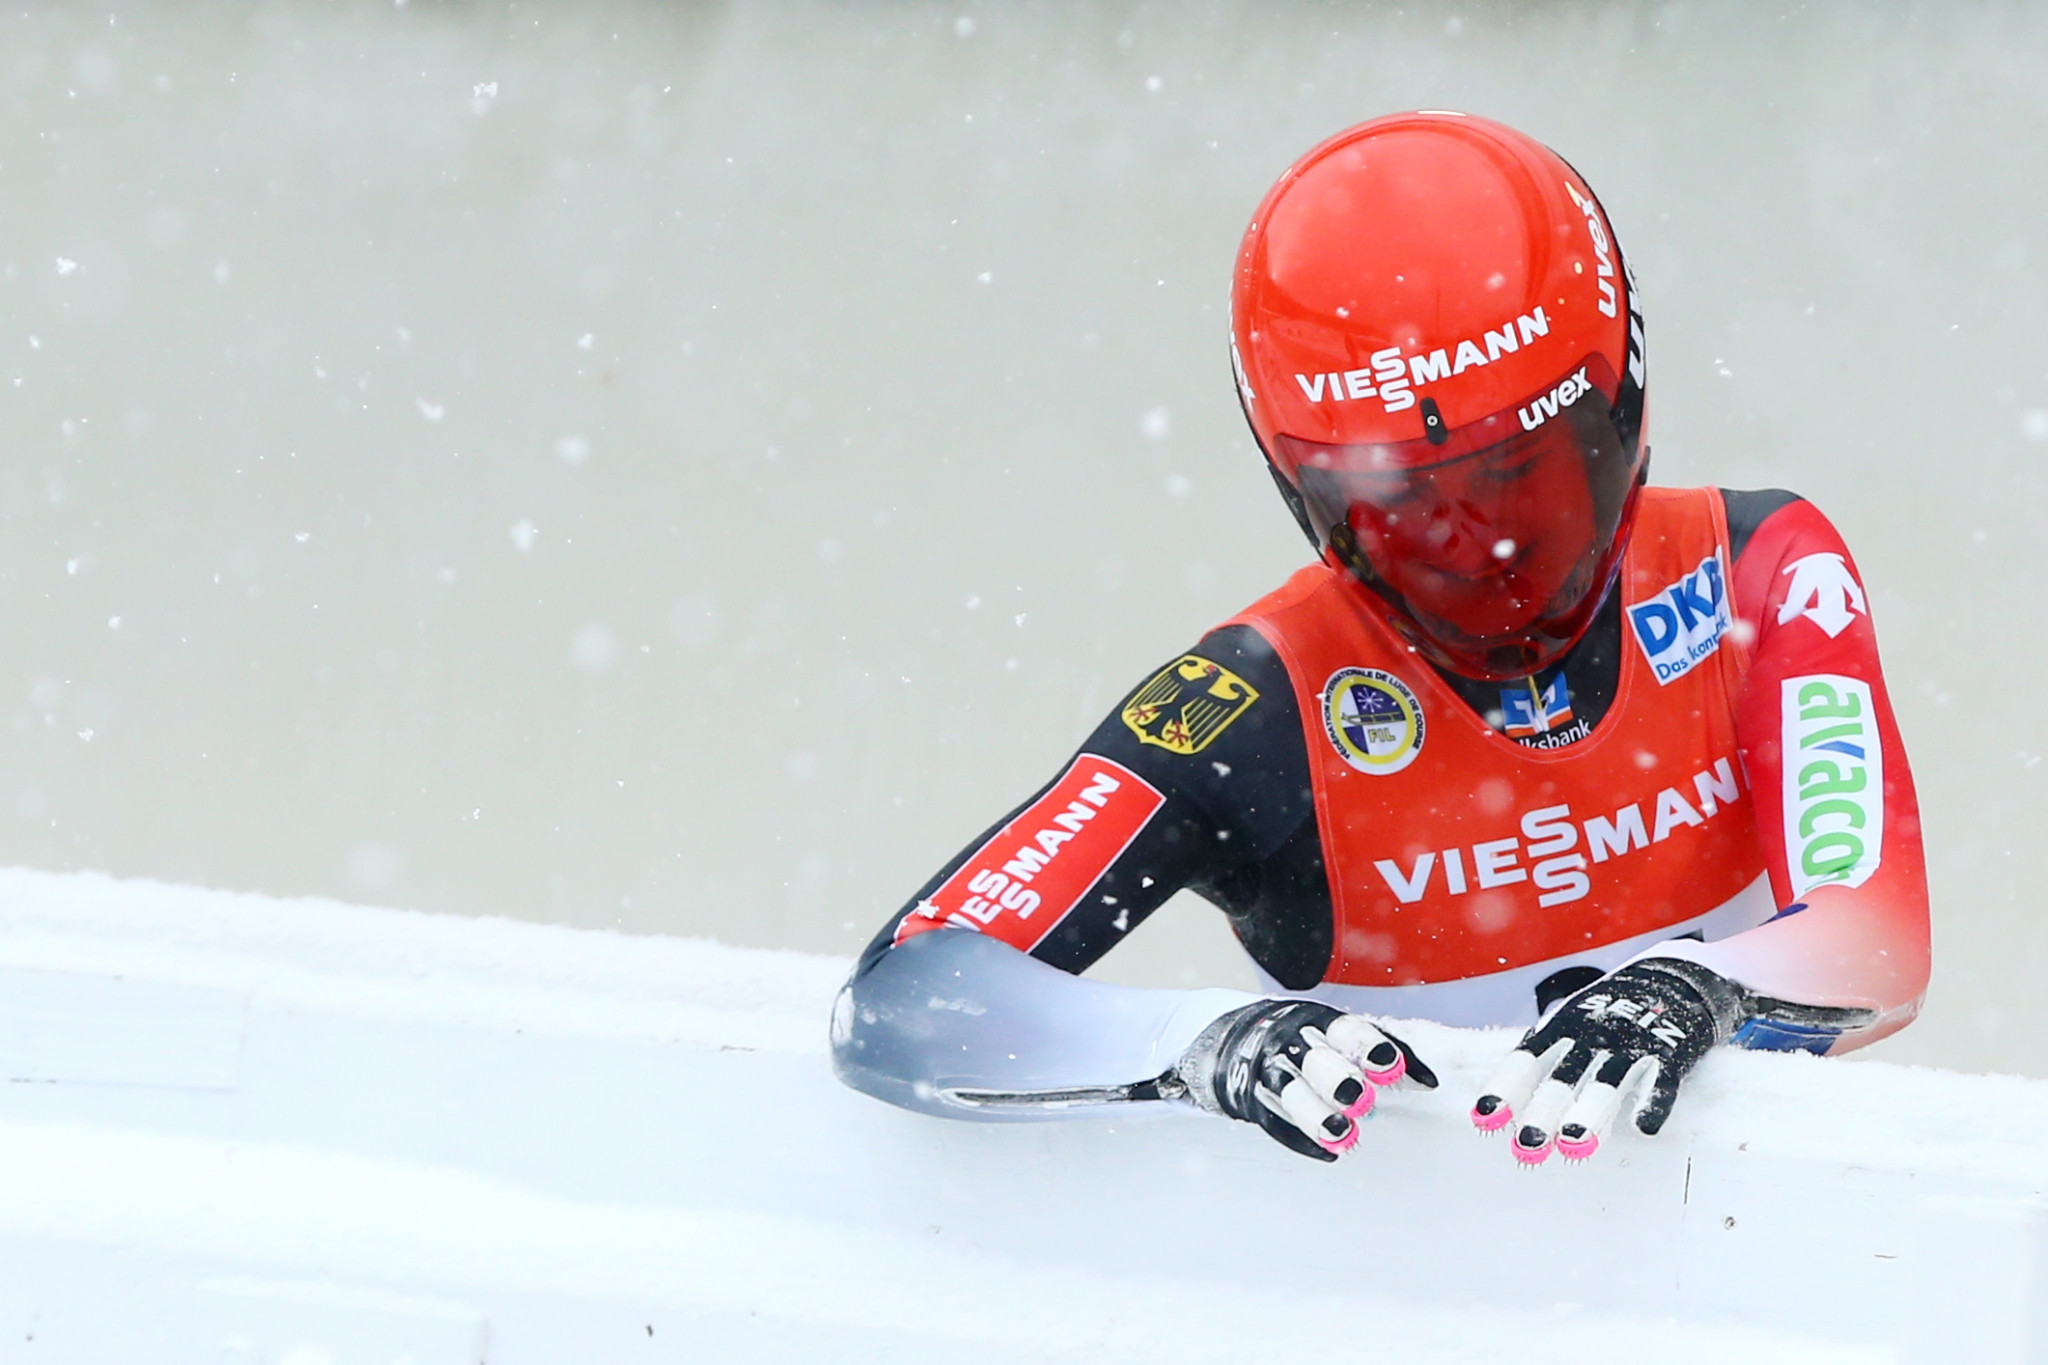 Julia Taubitz celebrated victory at the Luge World Cup in Königssee ©Getty Images